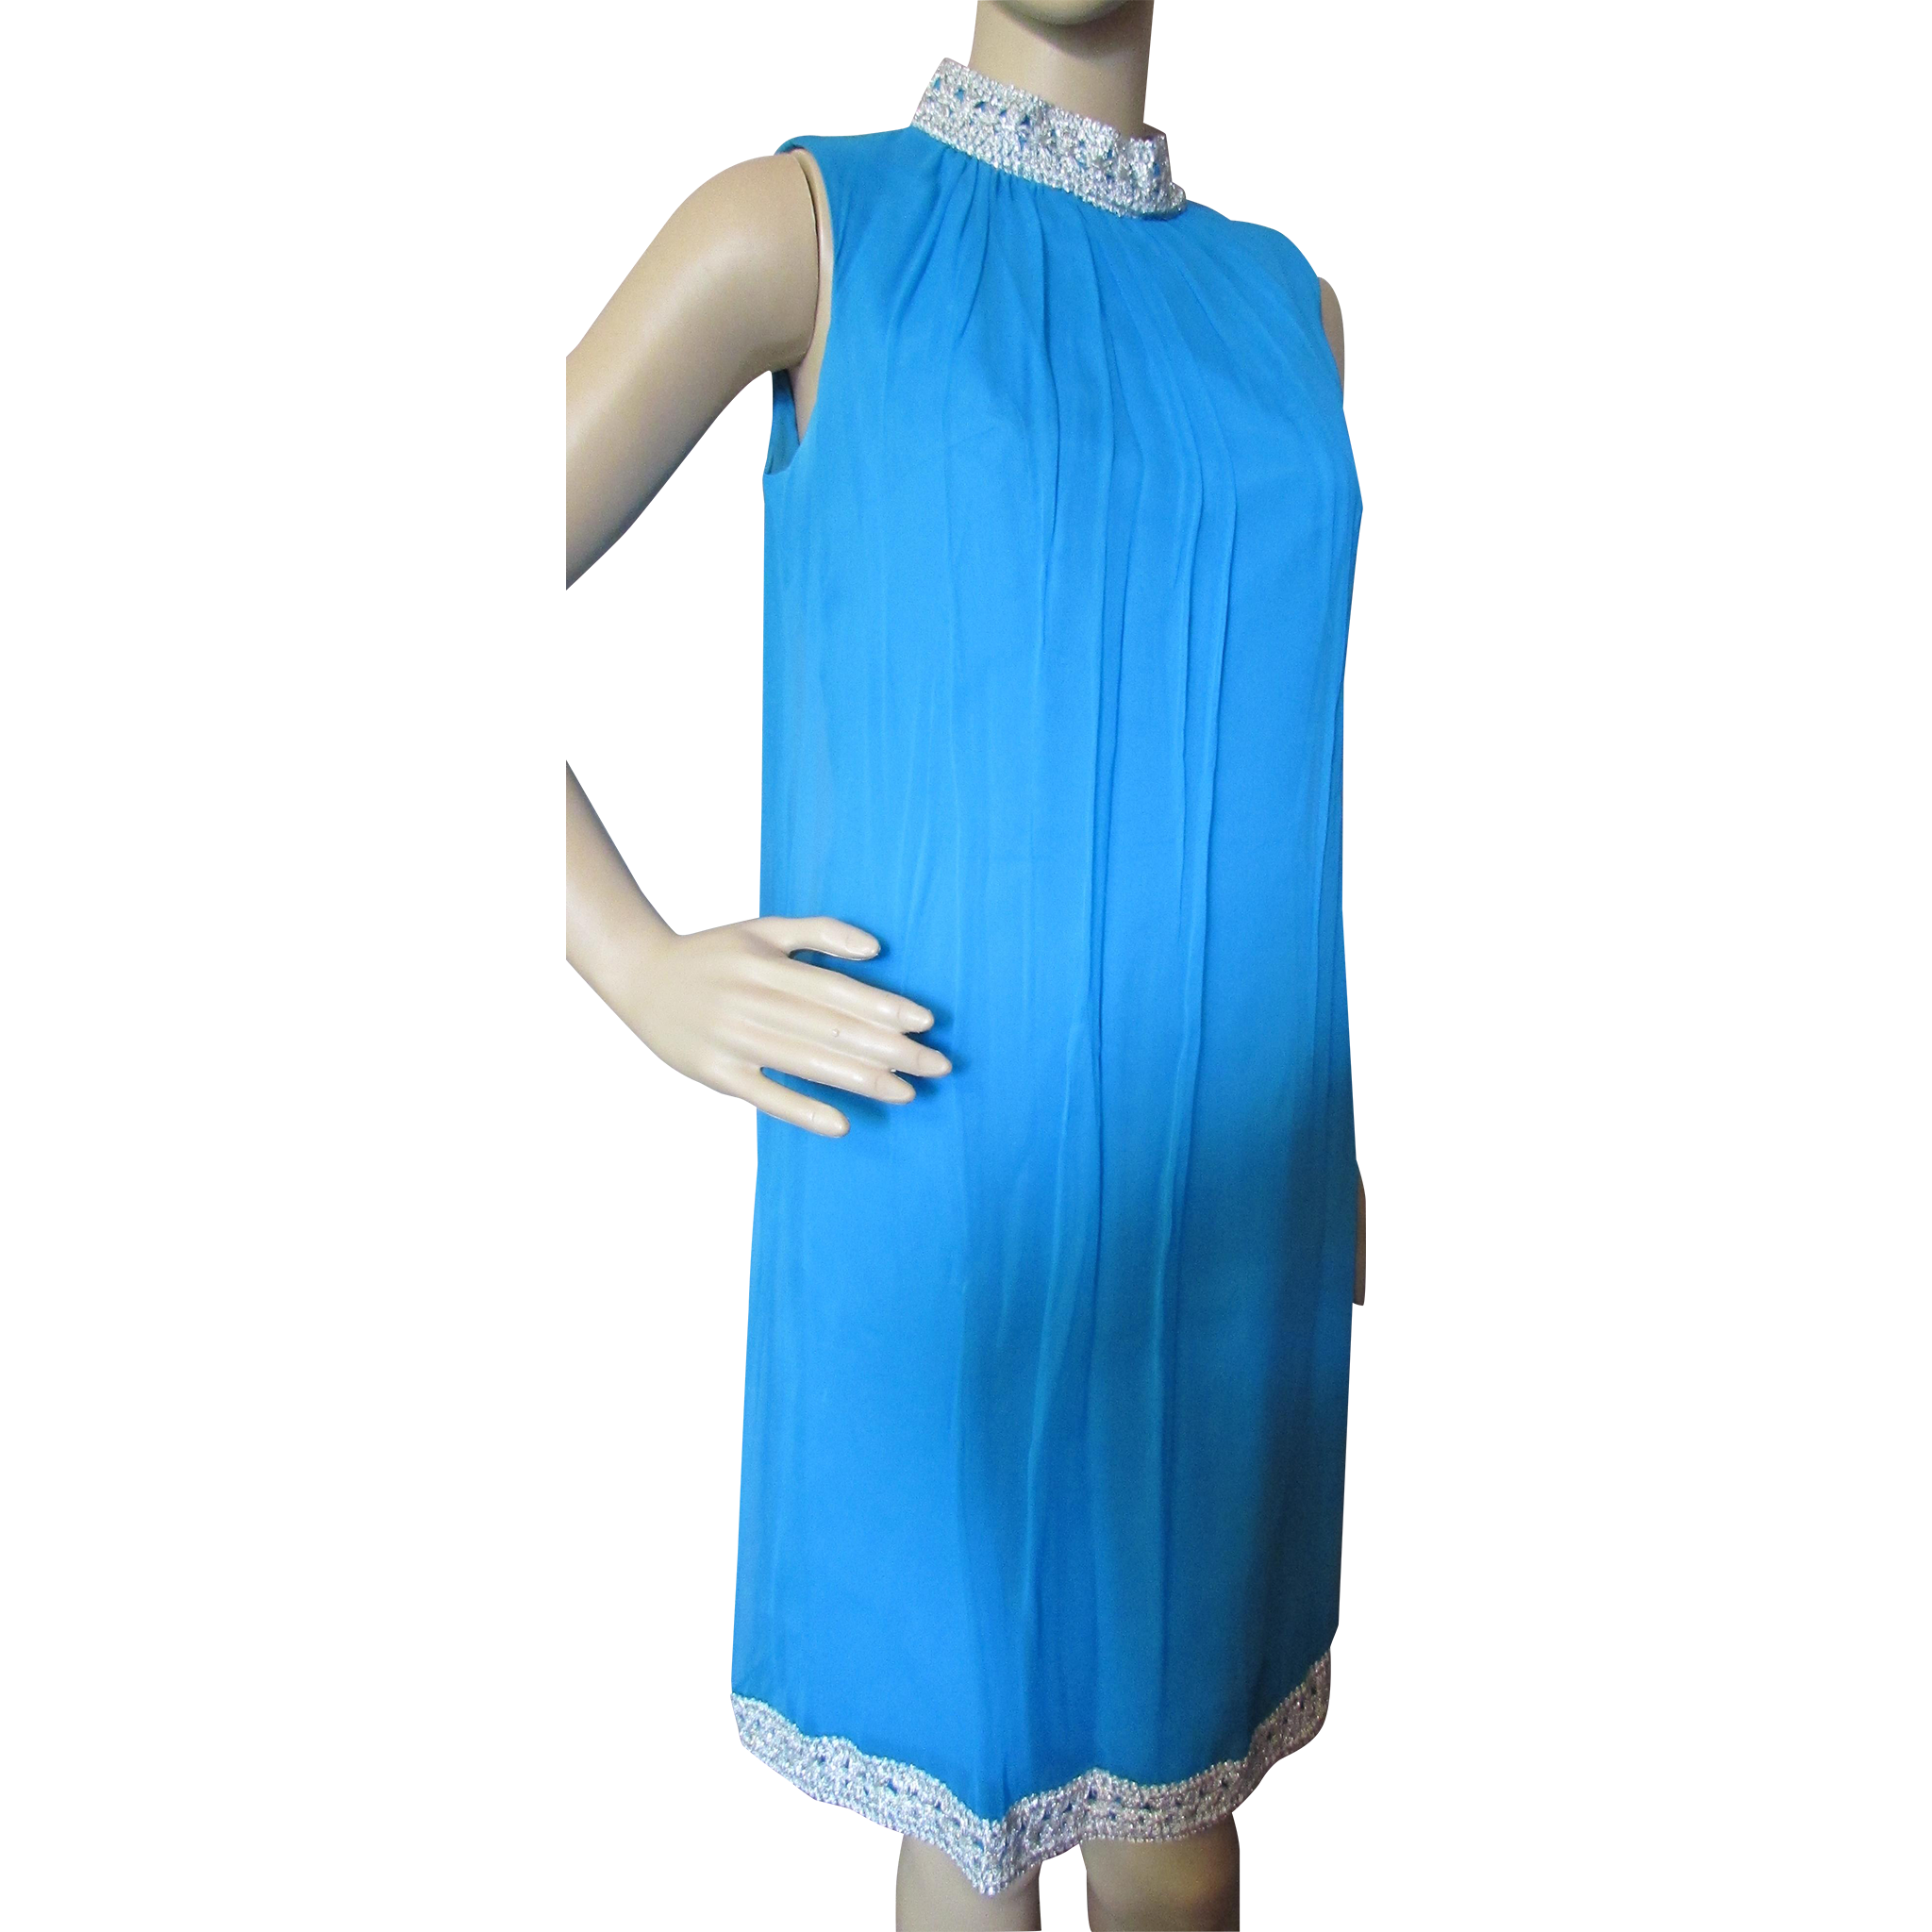 Mod '60's Style Cocktail Dress in Turquoise Chiffon with Silver Tone Trim